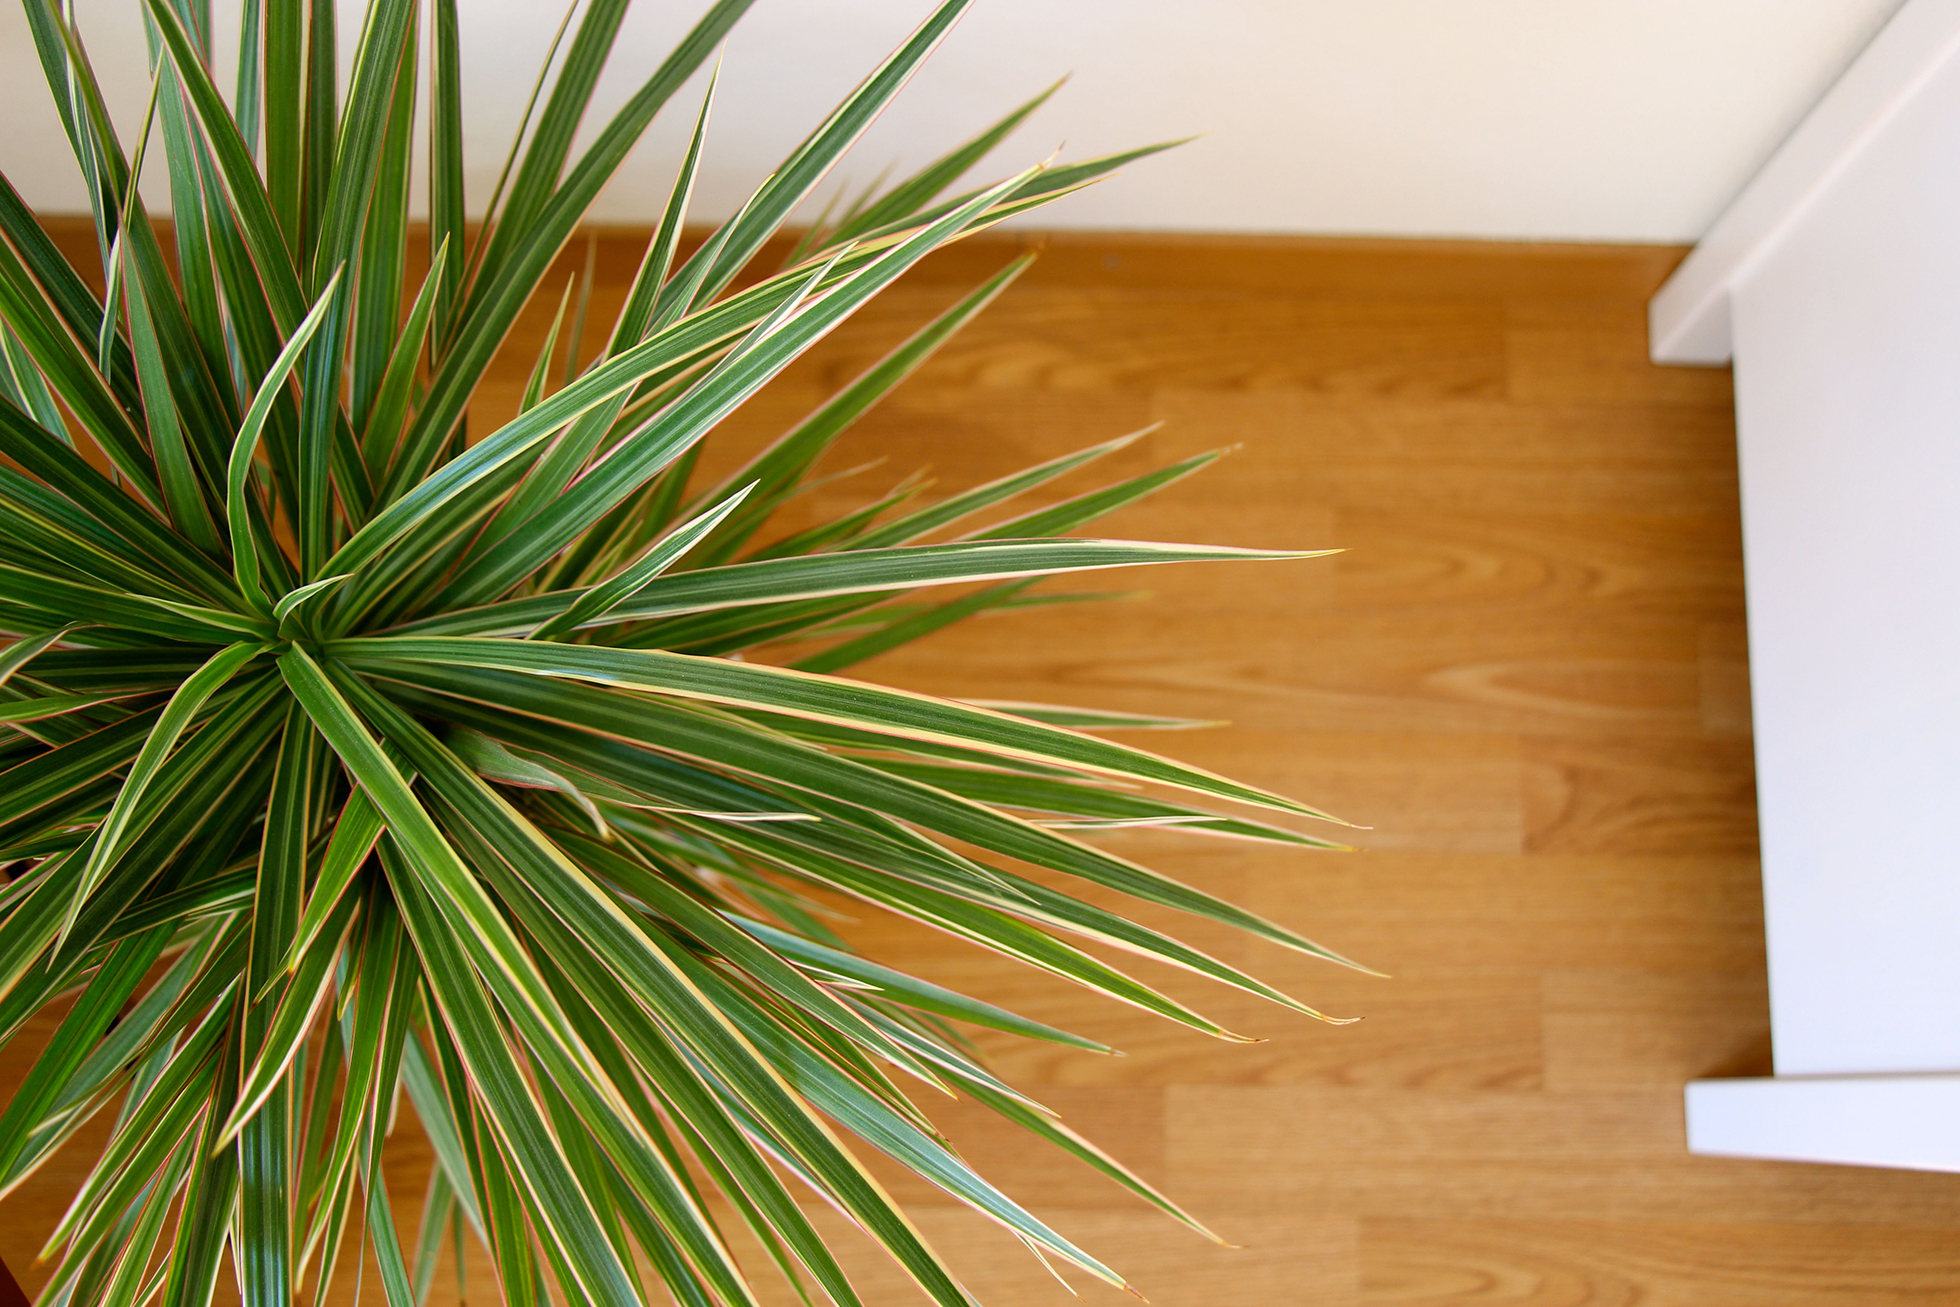 Dracaena plant in a home